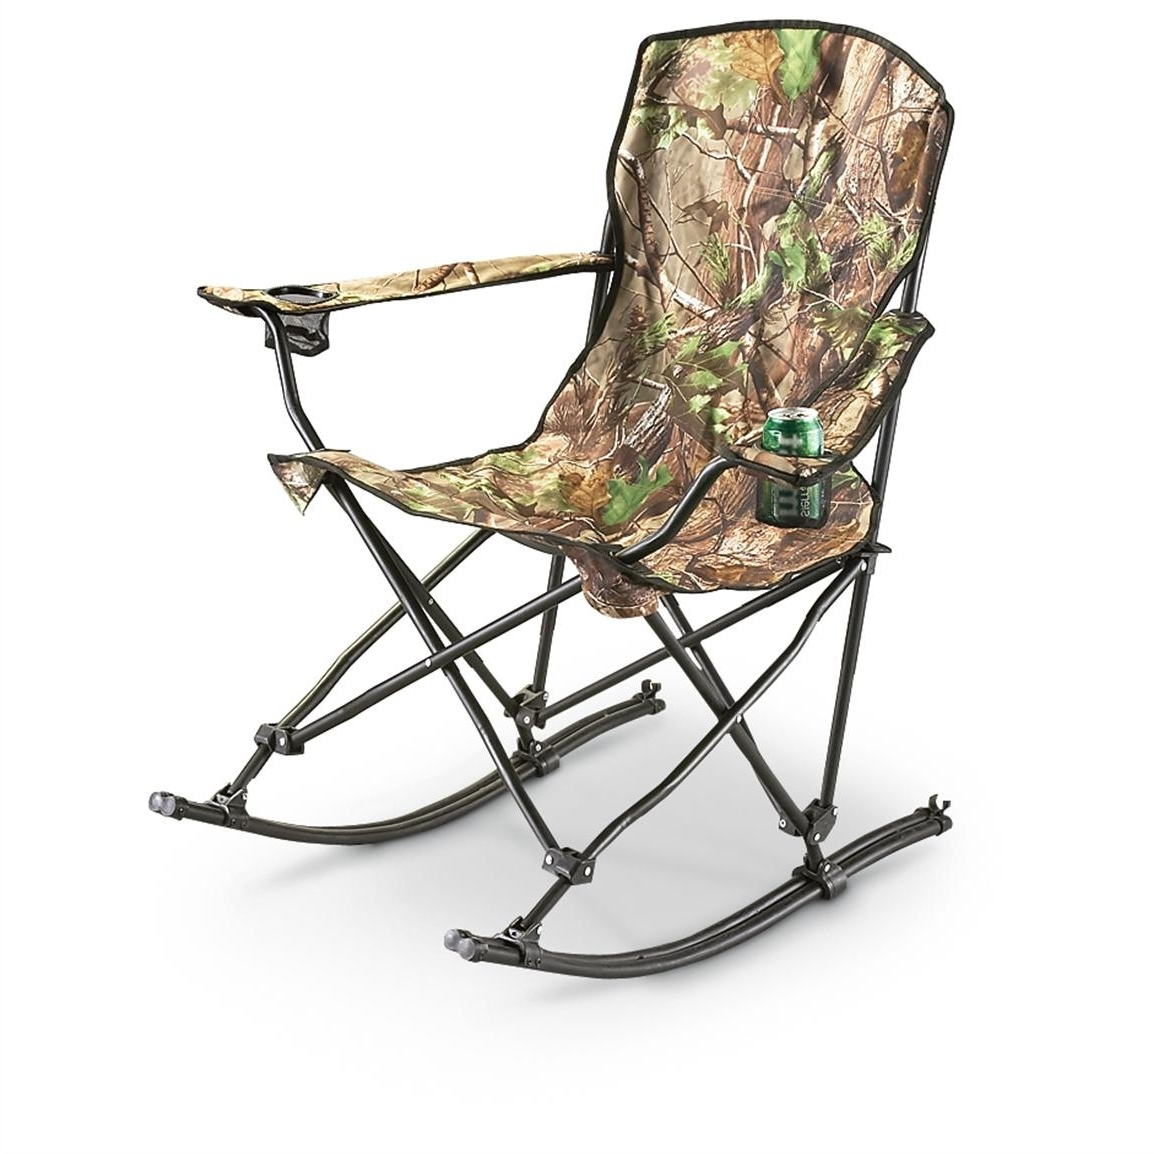 Stansport™ Team Realtree® Folding Rocking Chair – 178647, Chairs At Pertaining To Trendy Folding Rocking Chairs (View 8 of 20)